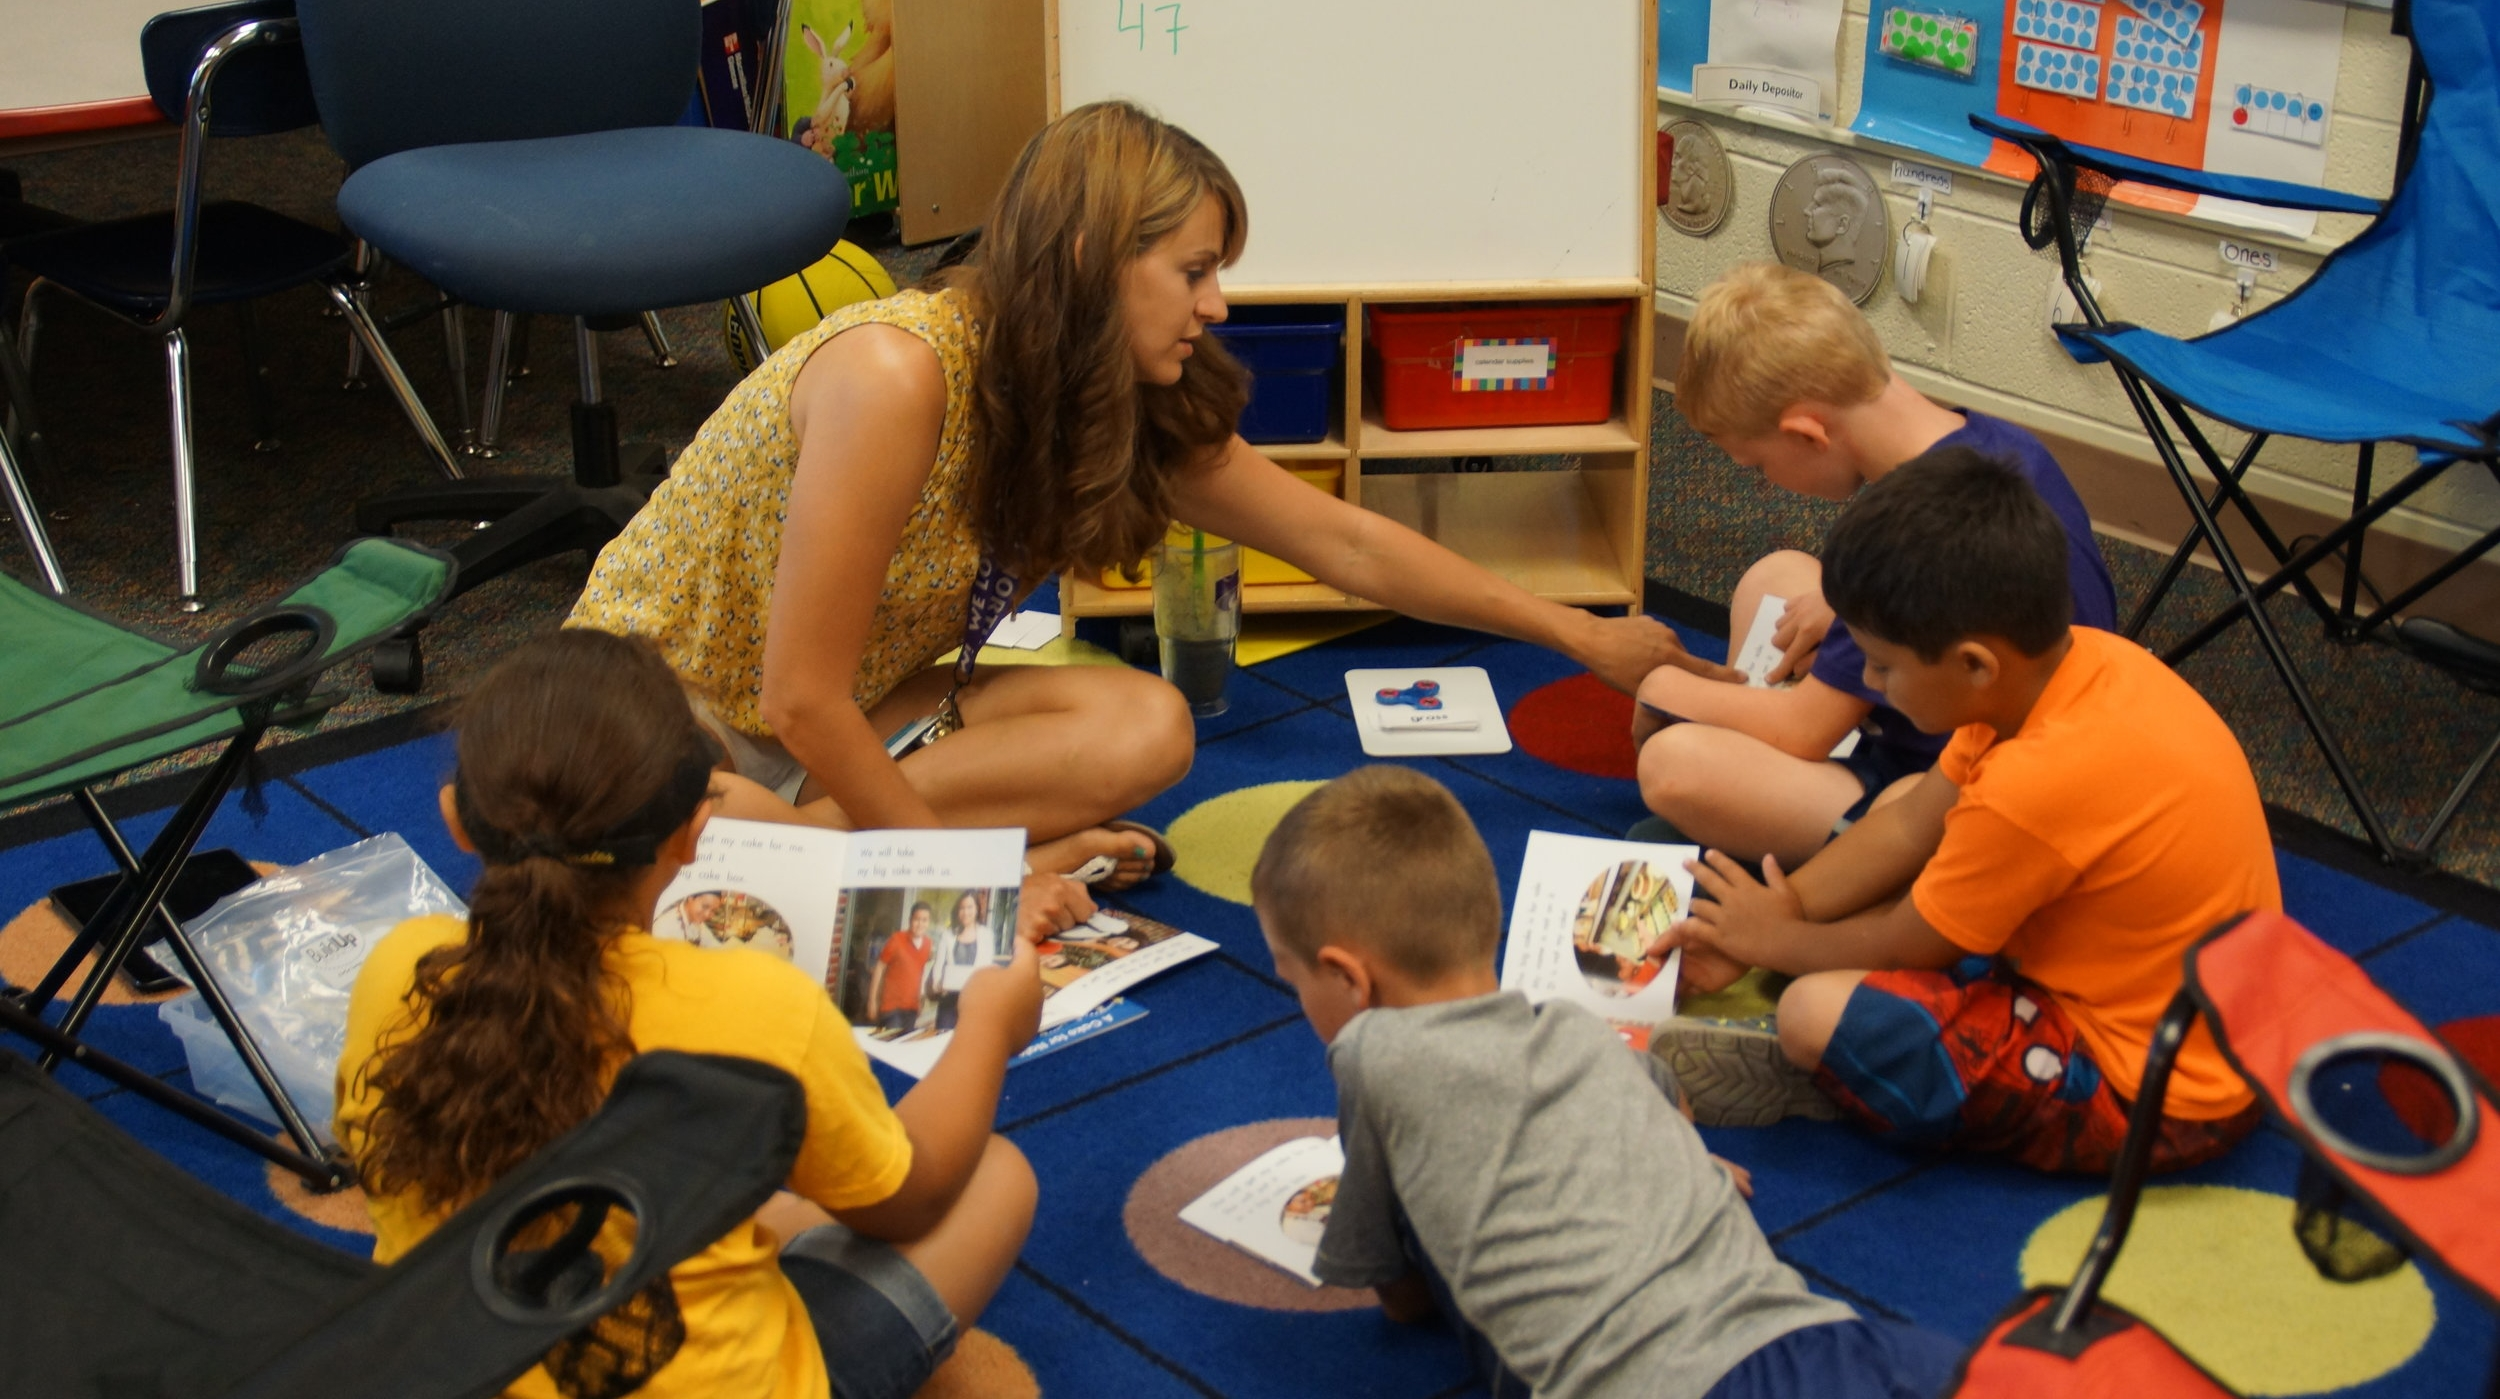 In-School - The Reading Roadmap works with in-school skills-based reading systems. In Kansas, the Reading Roadmap aligns with the state's Multi-Tiered Systems of Supports (MTSS) model. This approach creates a seamless connection between in-and-out of school intervention and progress monitoring. Kansas MTSS identifies why a student is struggling and empowers teachers to provide instruction to best meet that student's need. The Reading Roadmap carries that practice into out-of-school and home environments, creating even better reading outcomes.